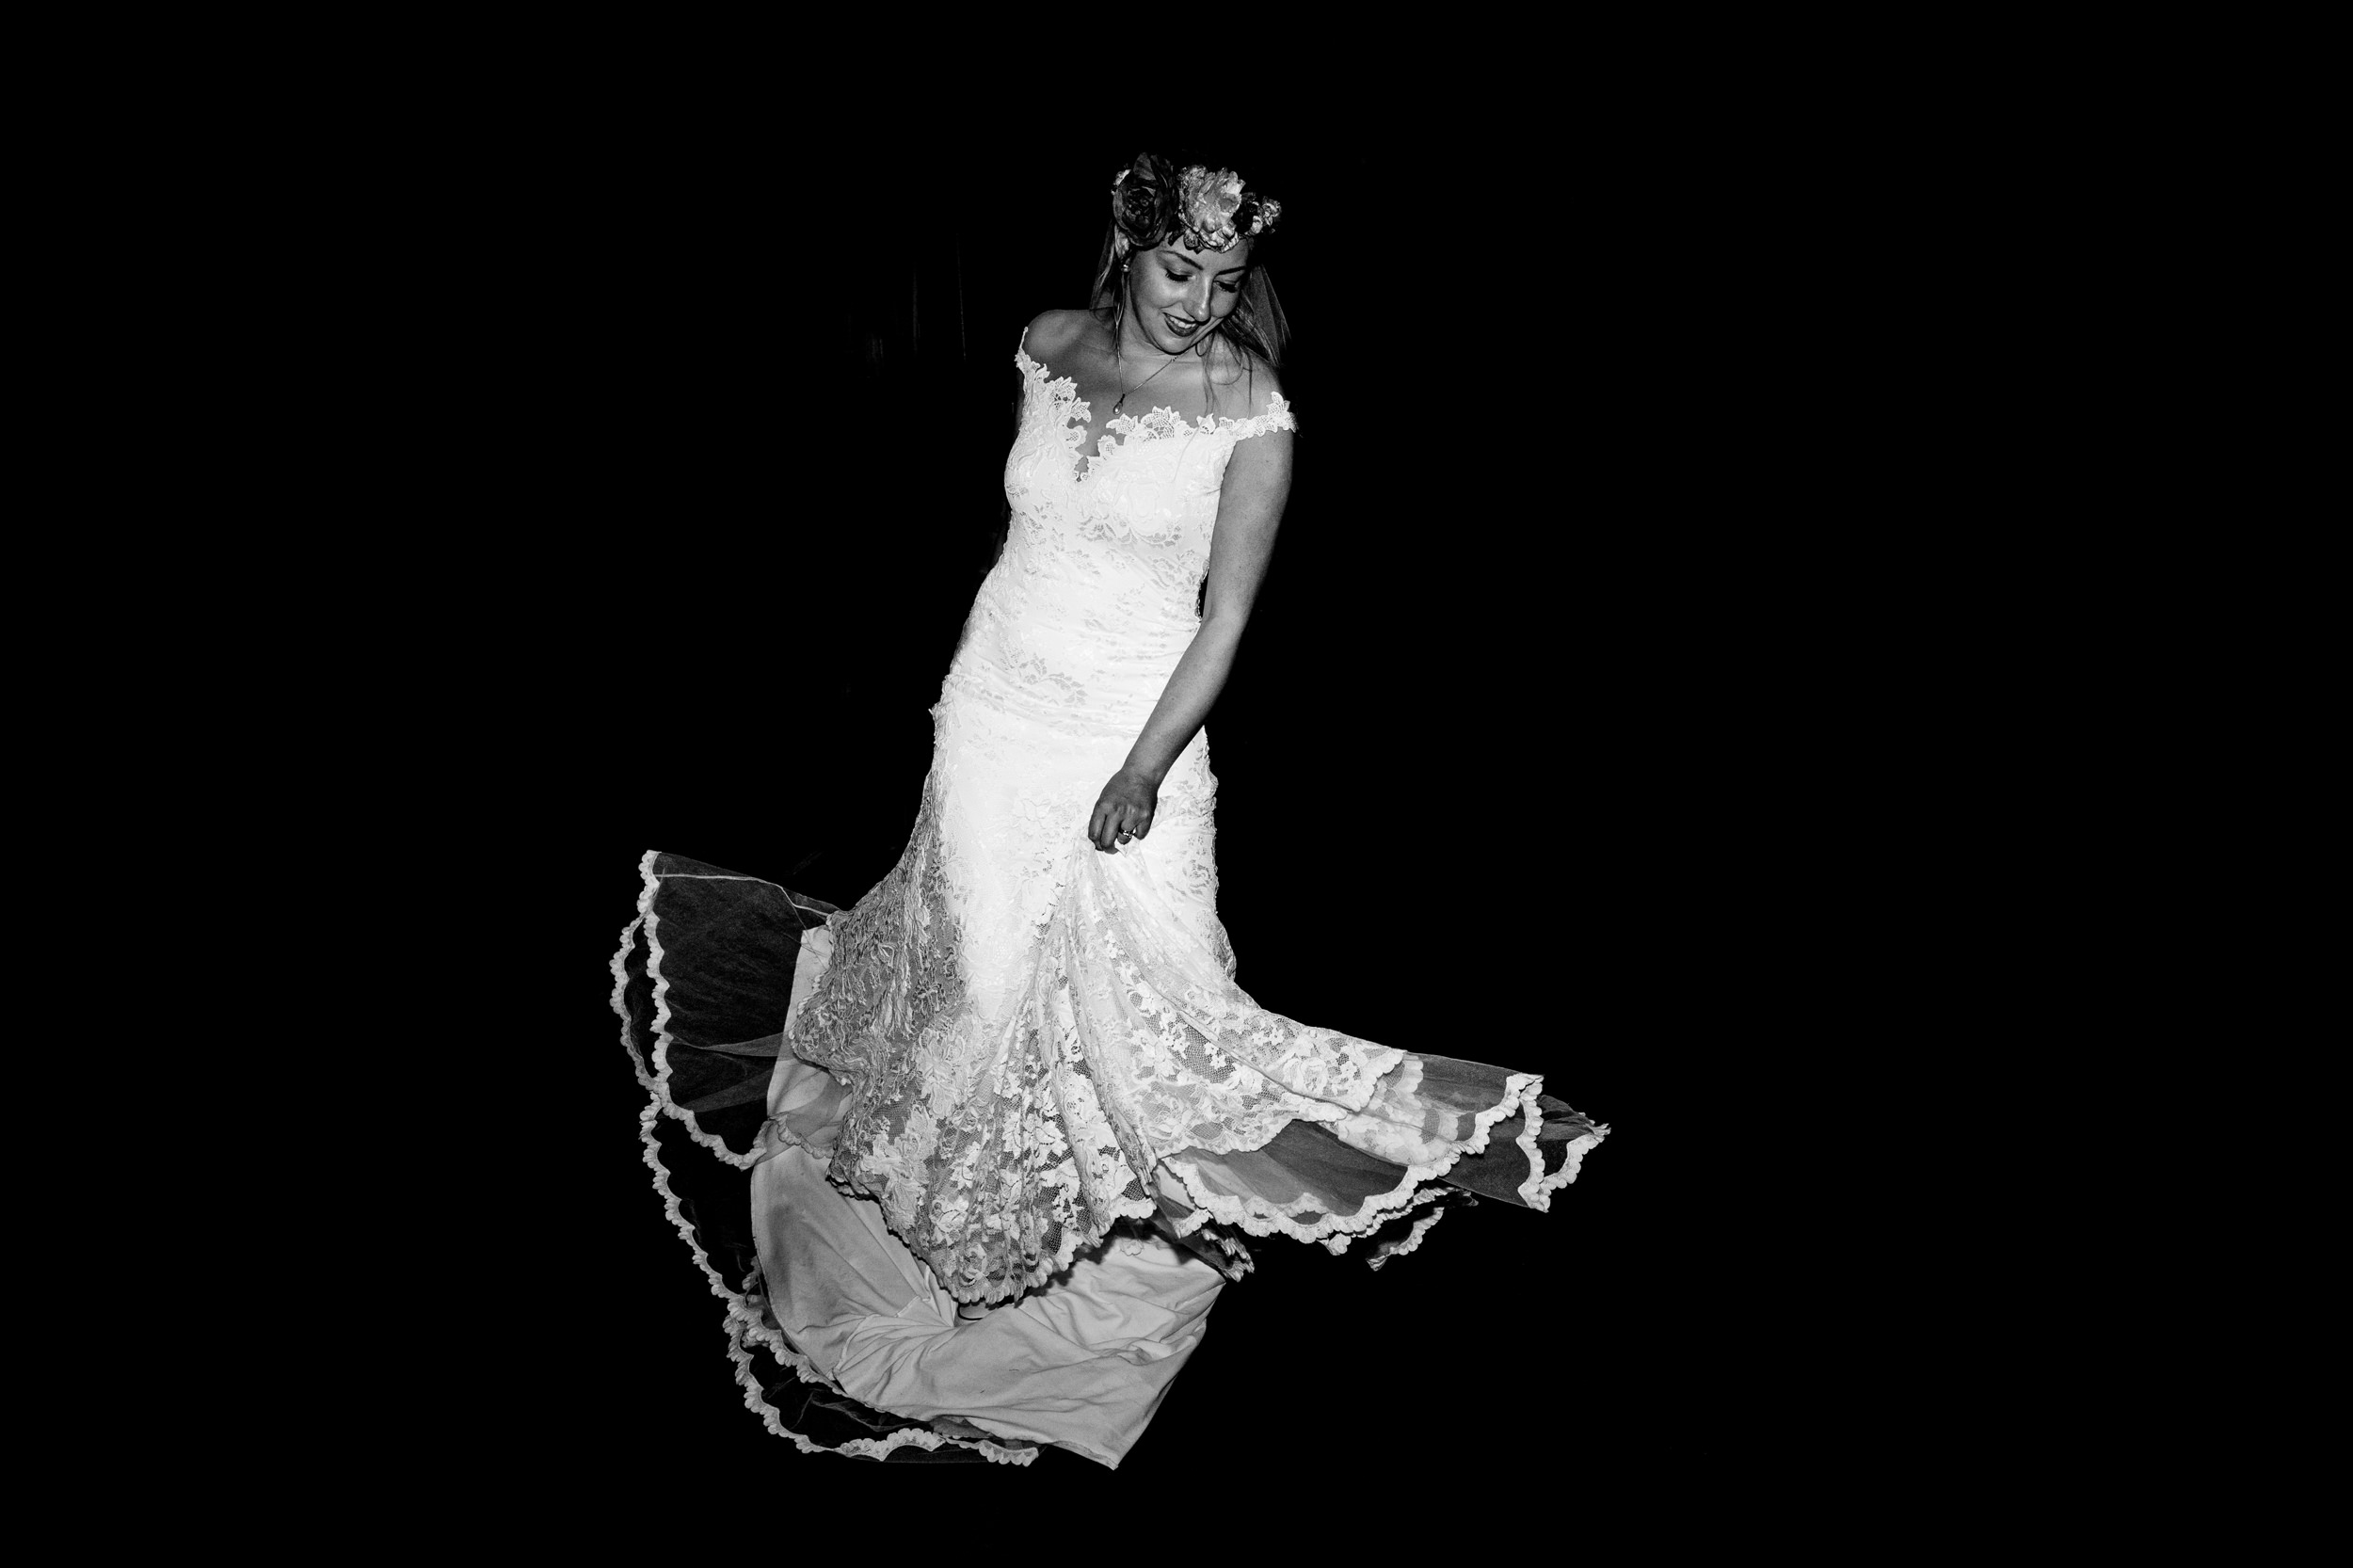 bride on dance floor. esk valley wedding photography by emma and rich.